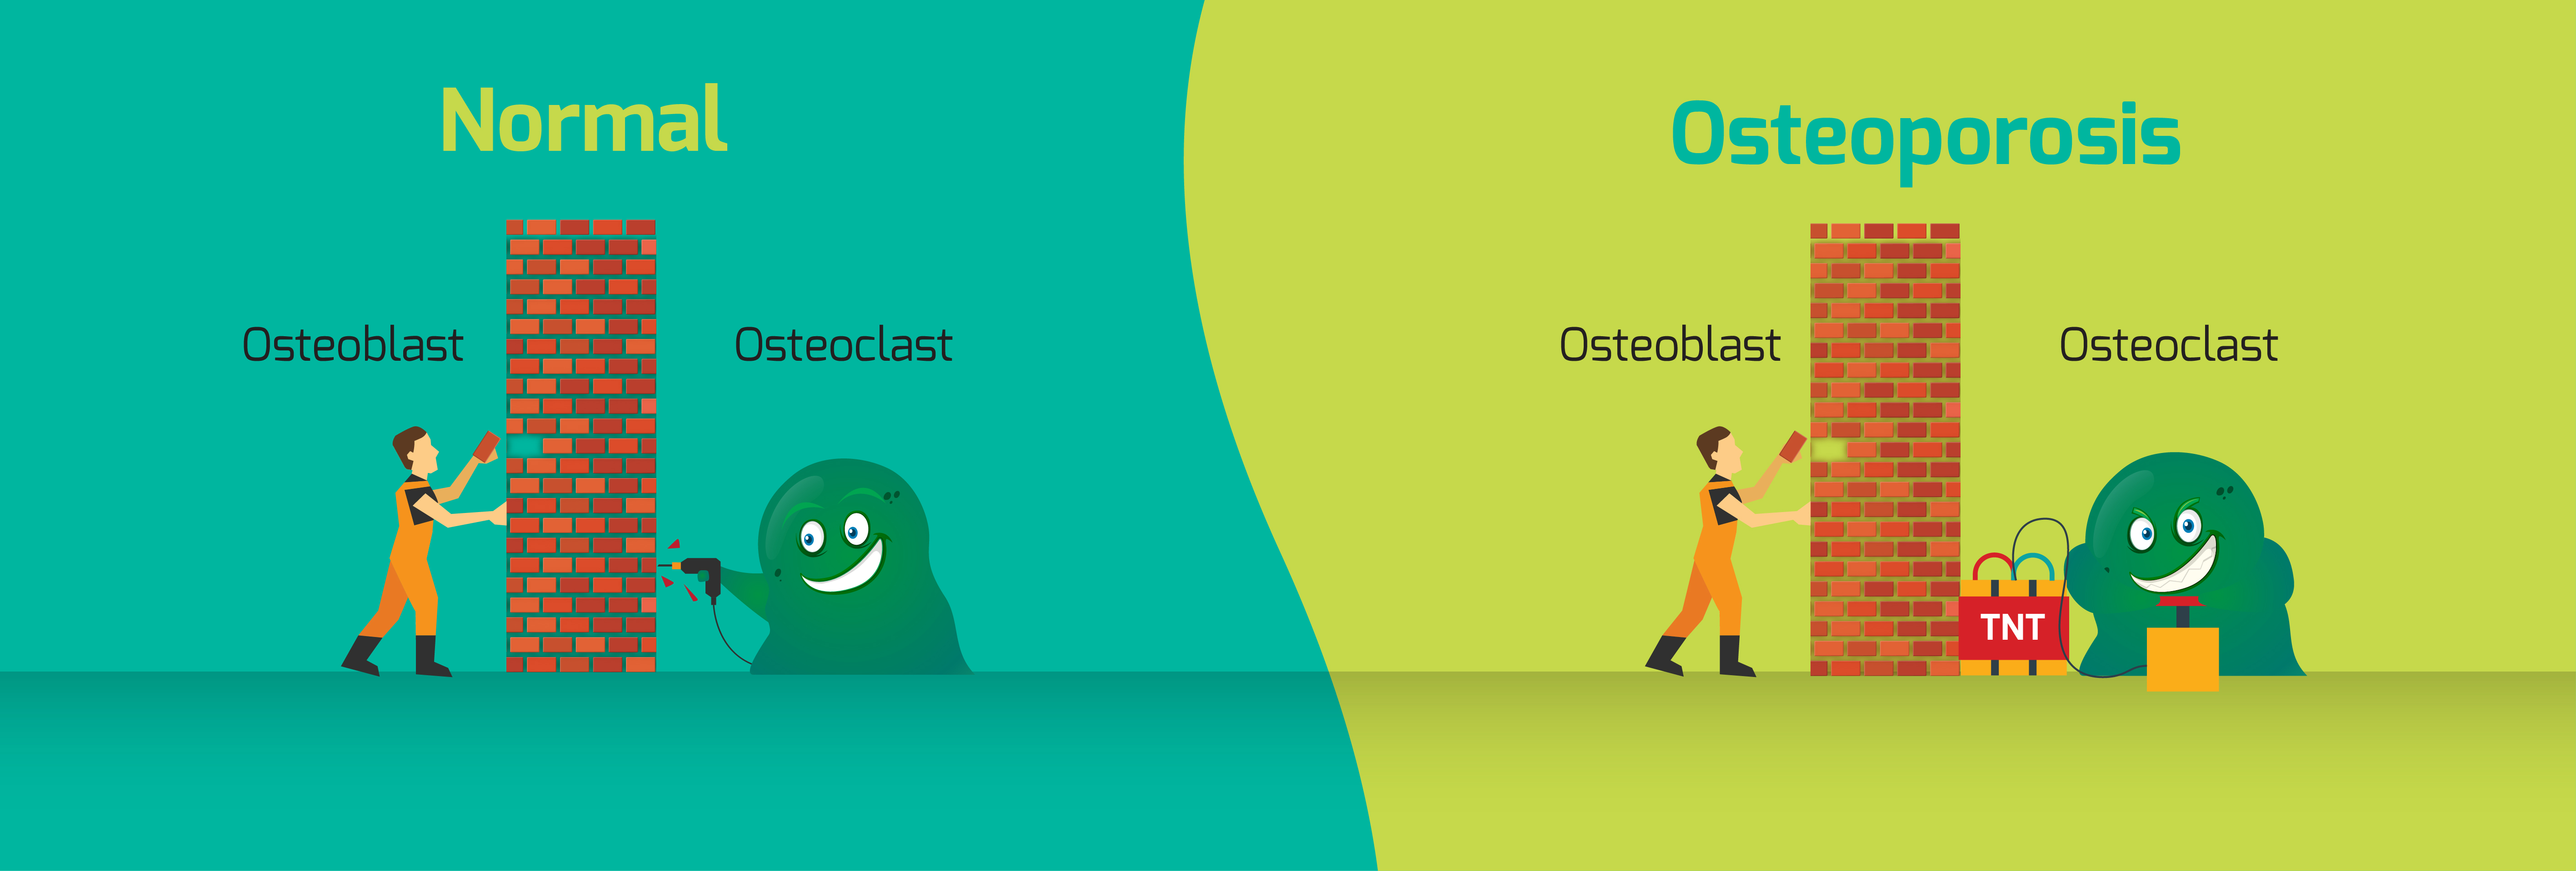 Prodia berpartisipasi dalam World Osteoporosis Day